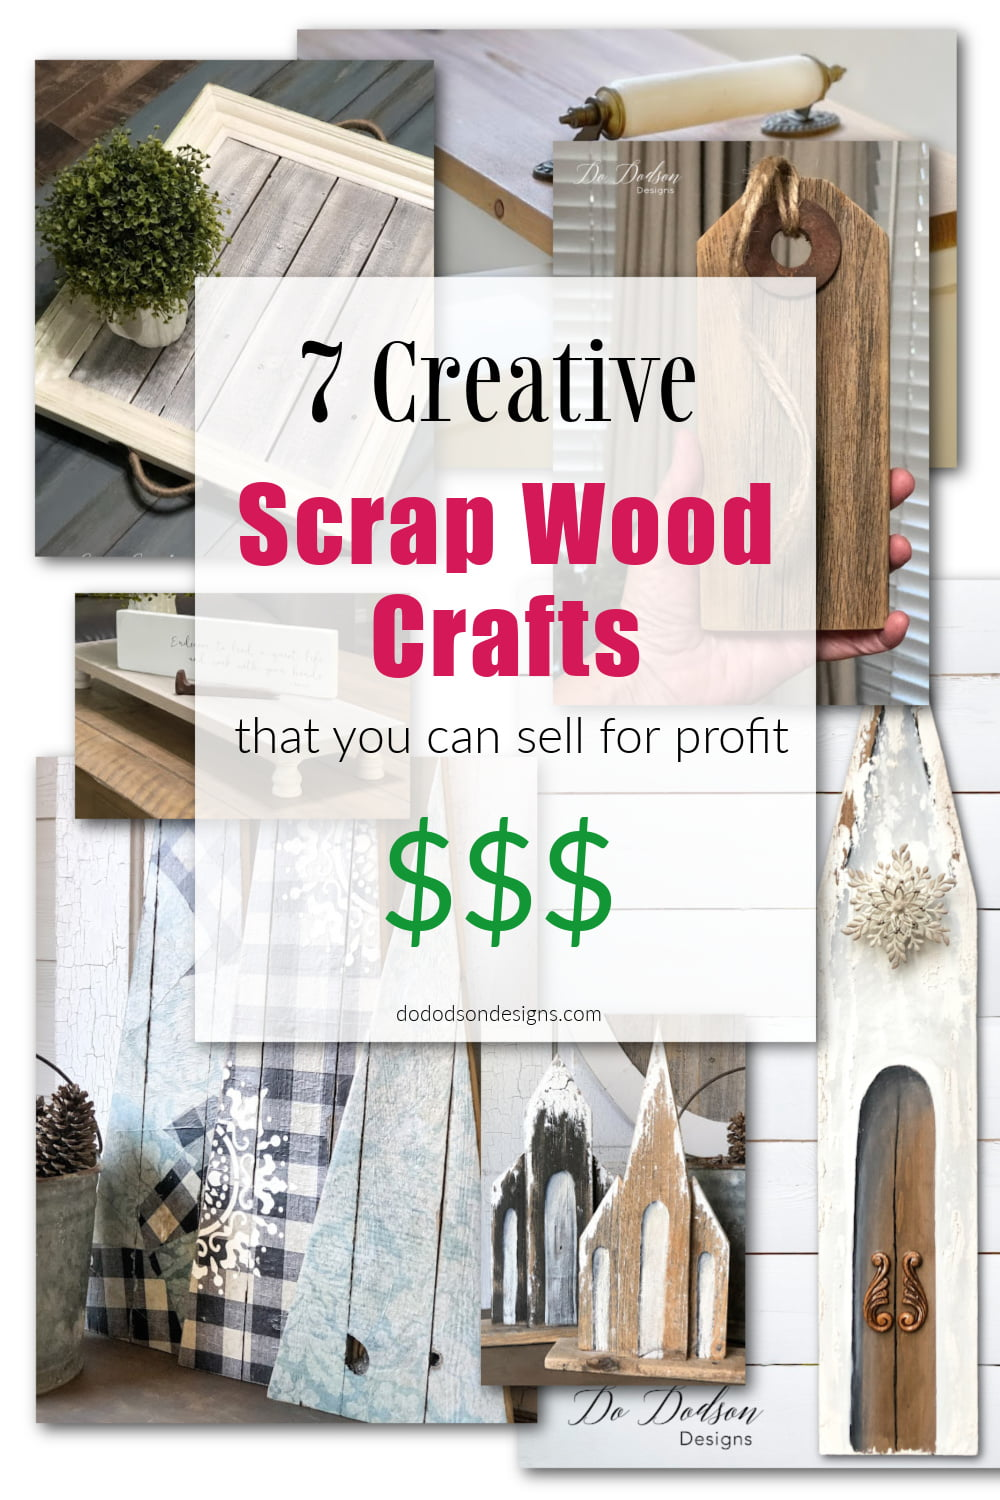 7 Creative Handmade Scrap Wood Crafts That Will Sell Quick